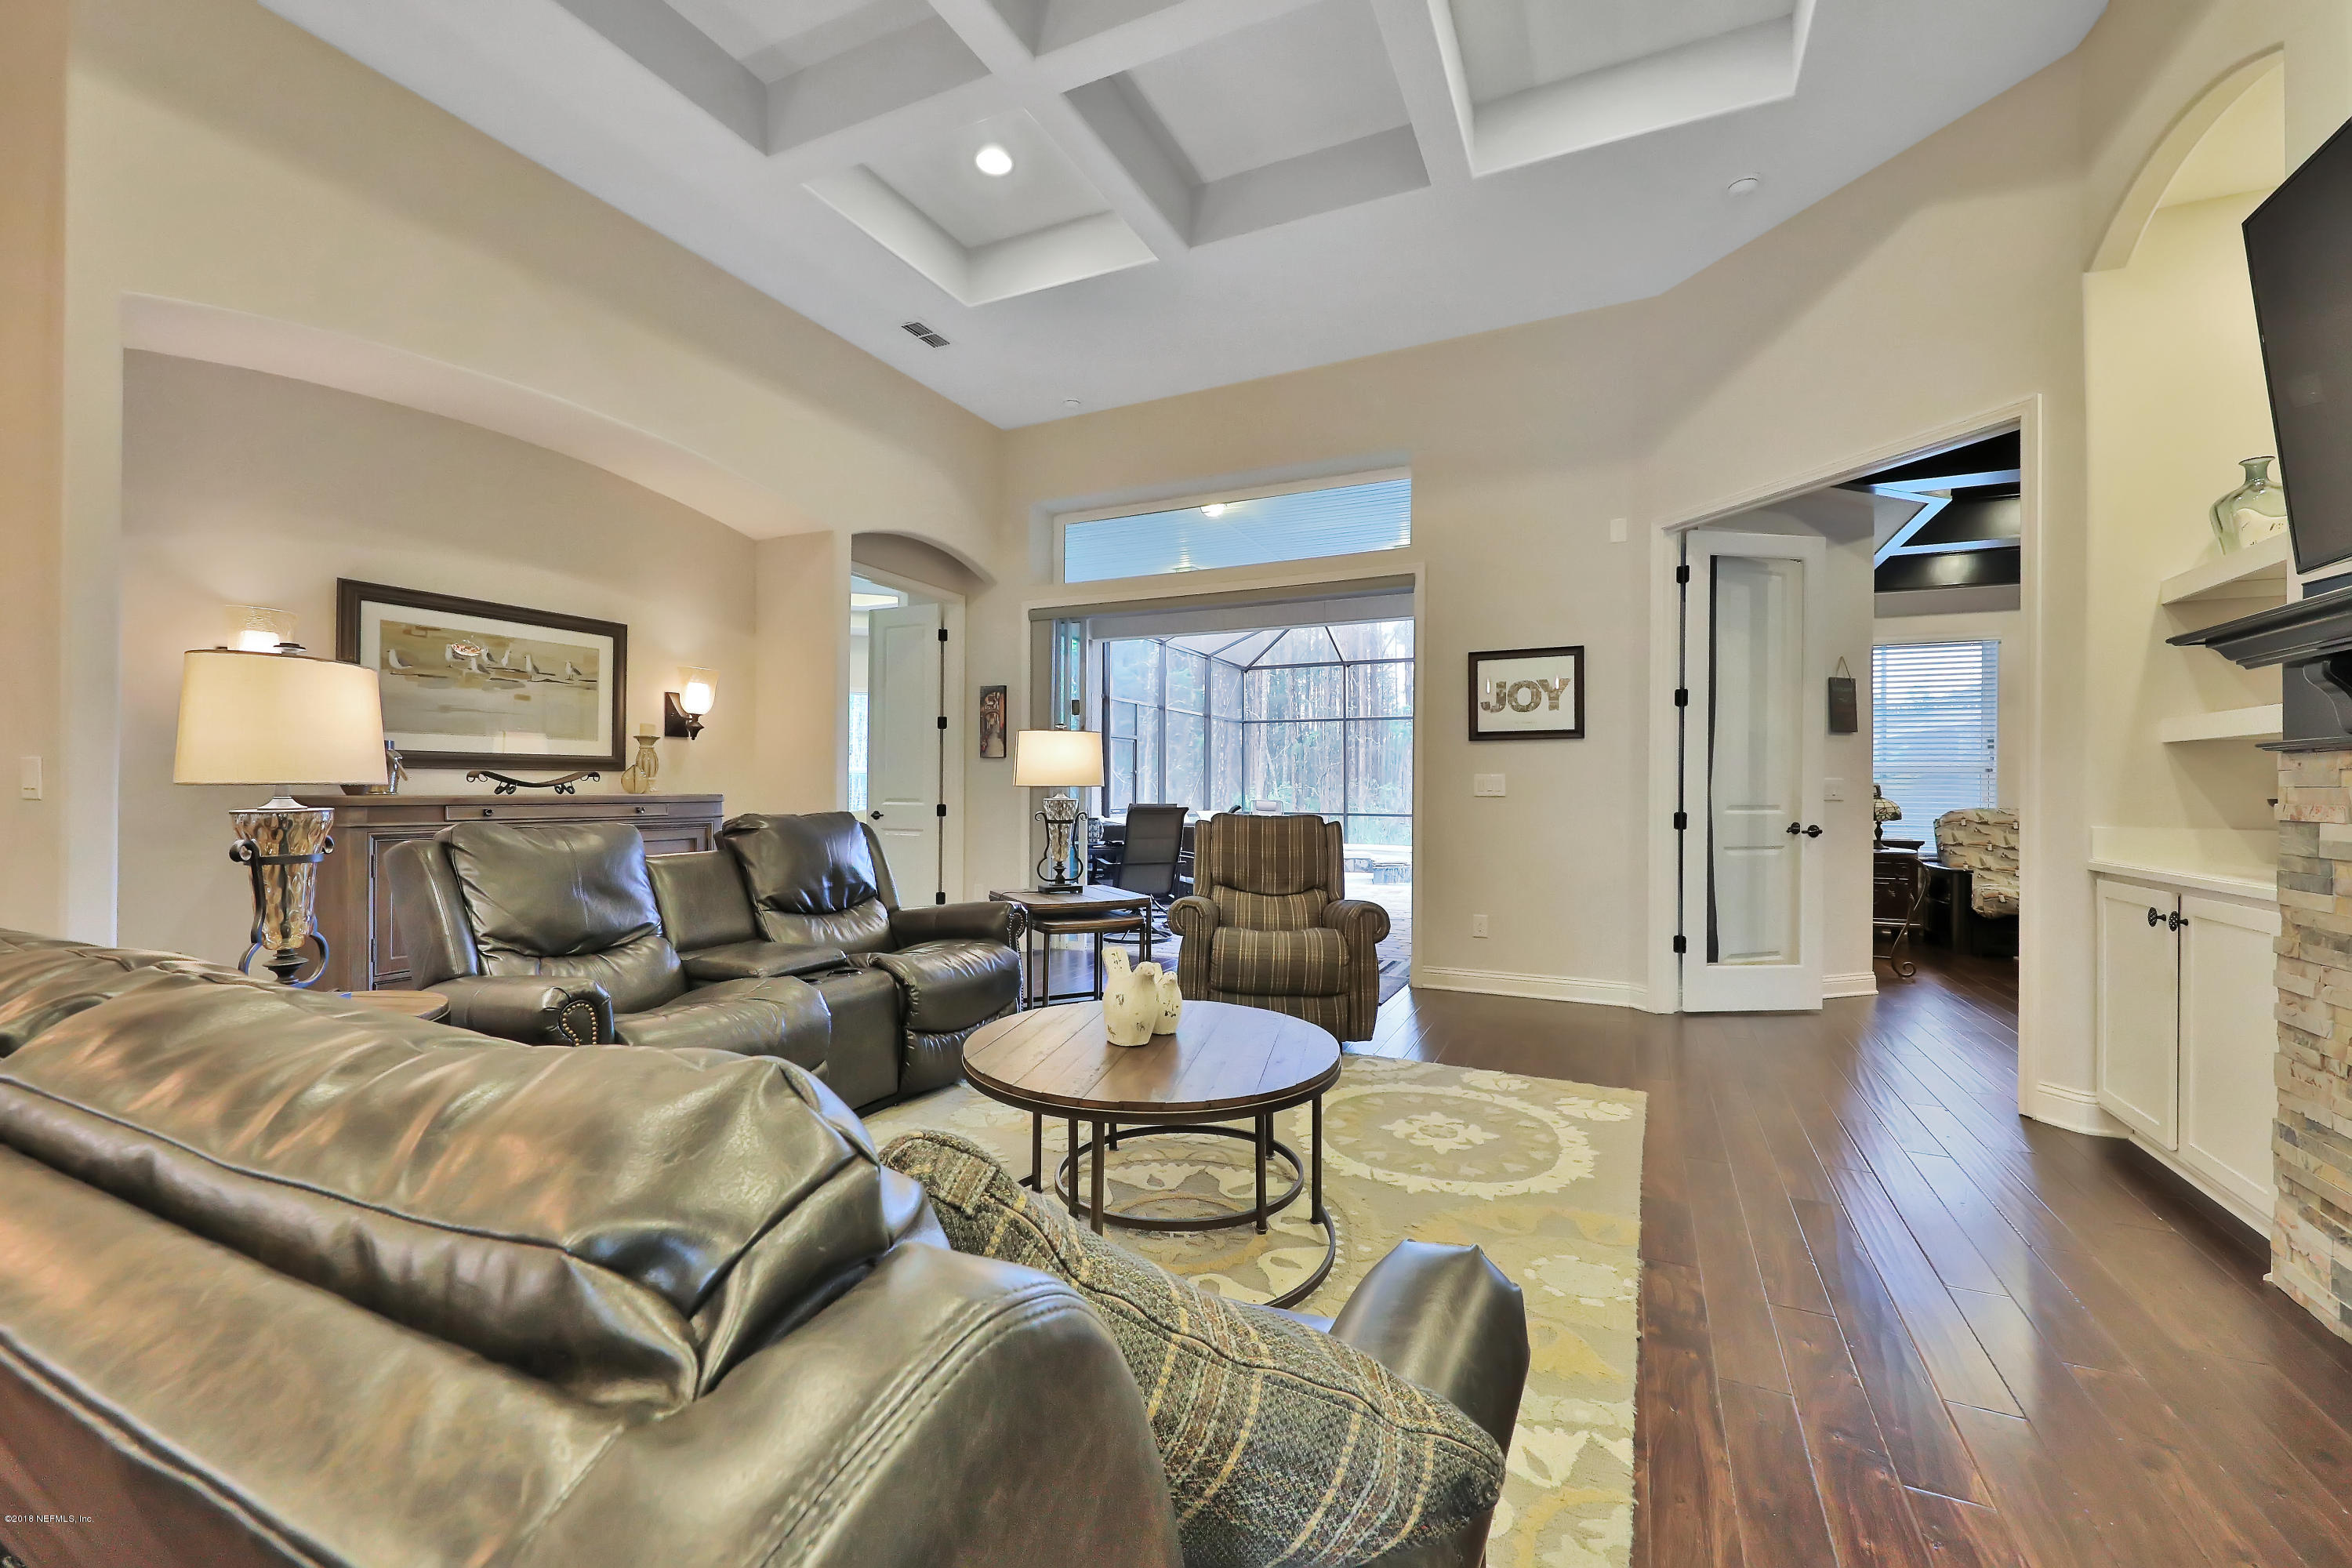 30 SENEGAL, PONTE VEDRA BEACH, FLORIDA 32081, 5 Bedrooms Bedrooms, ,5 BathroomsBathrooms,Residential - single family,For sale,SENEGAL,977260